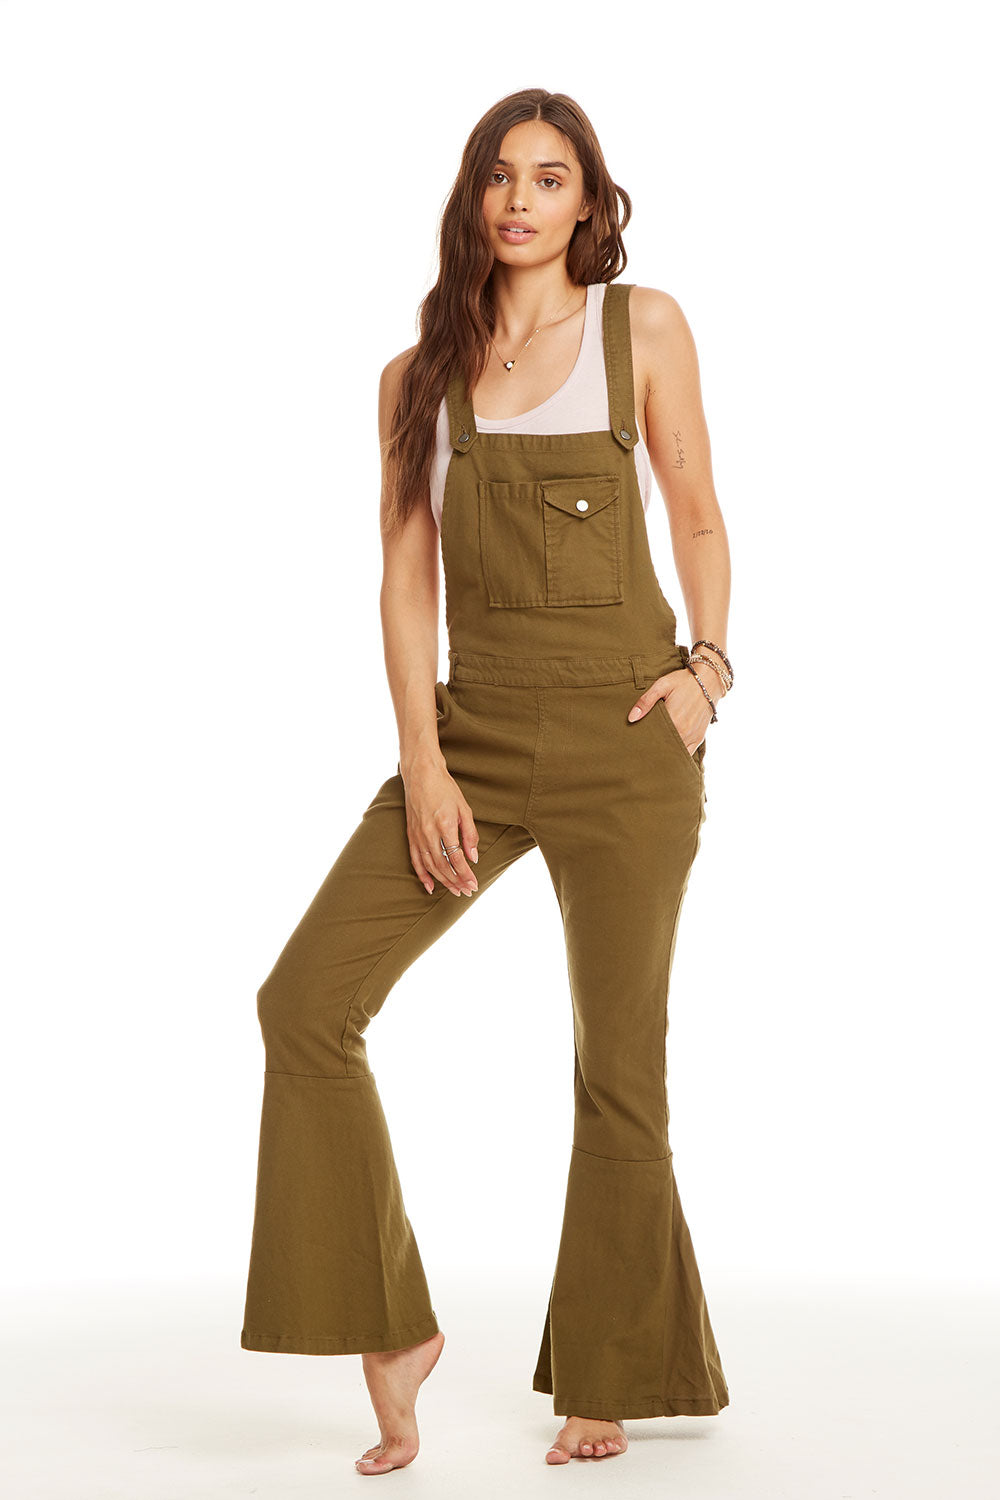 Vintage Canvas Flared Cross Back Overalls WOMENS chaserbrand4.myshopify.com